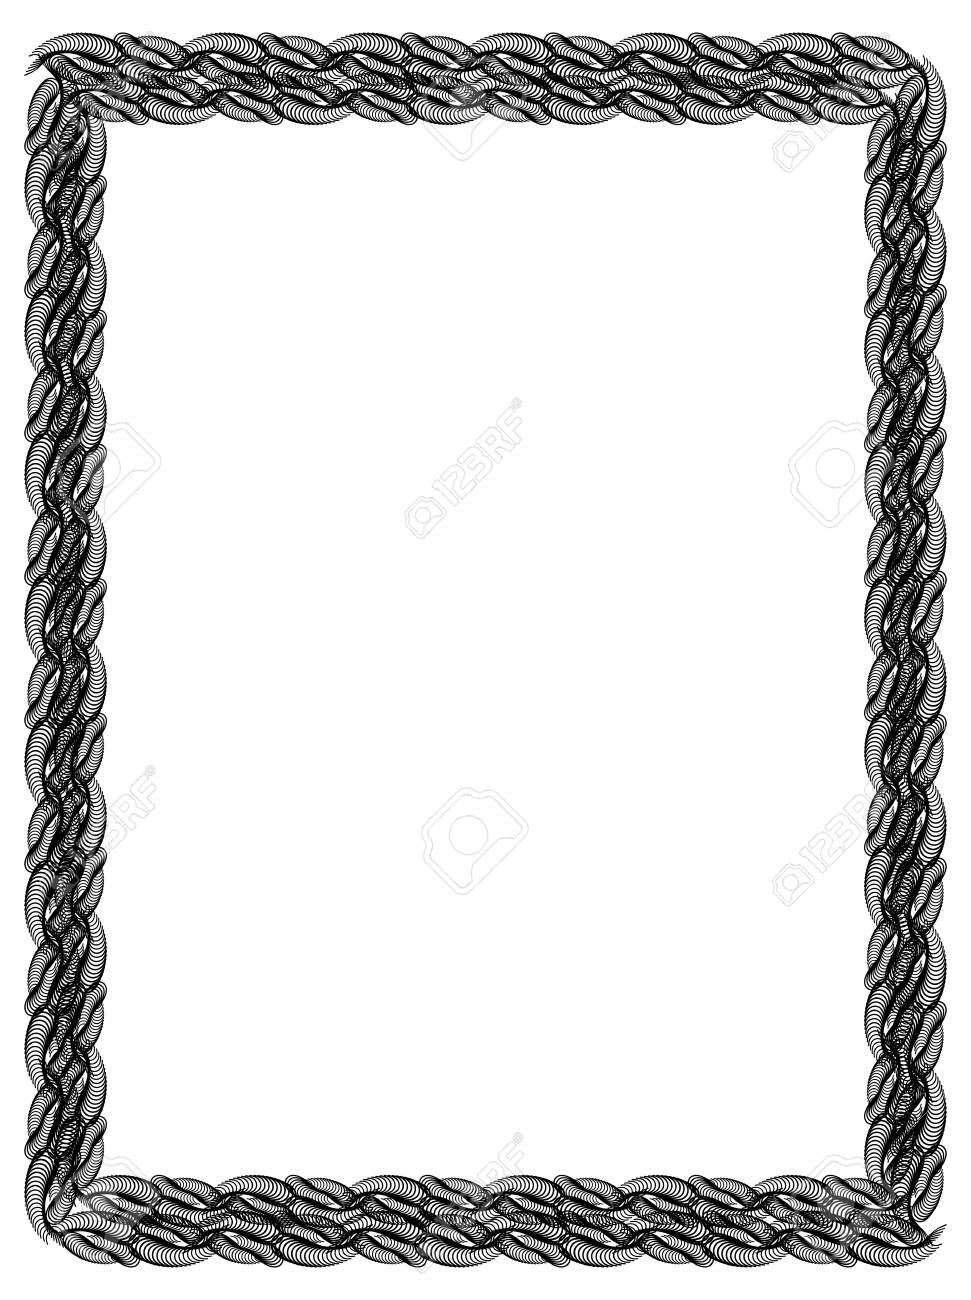 Black And White Abstract Vertical Frame. Guilloche Border For ...